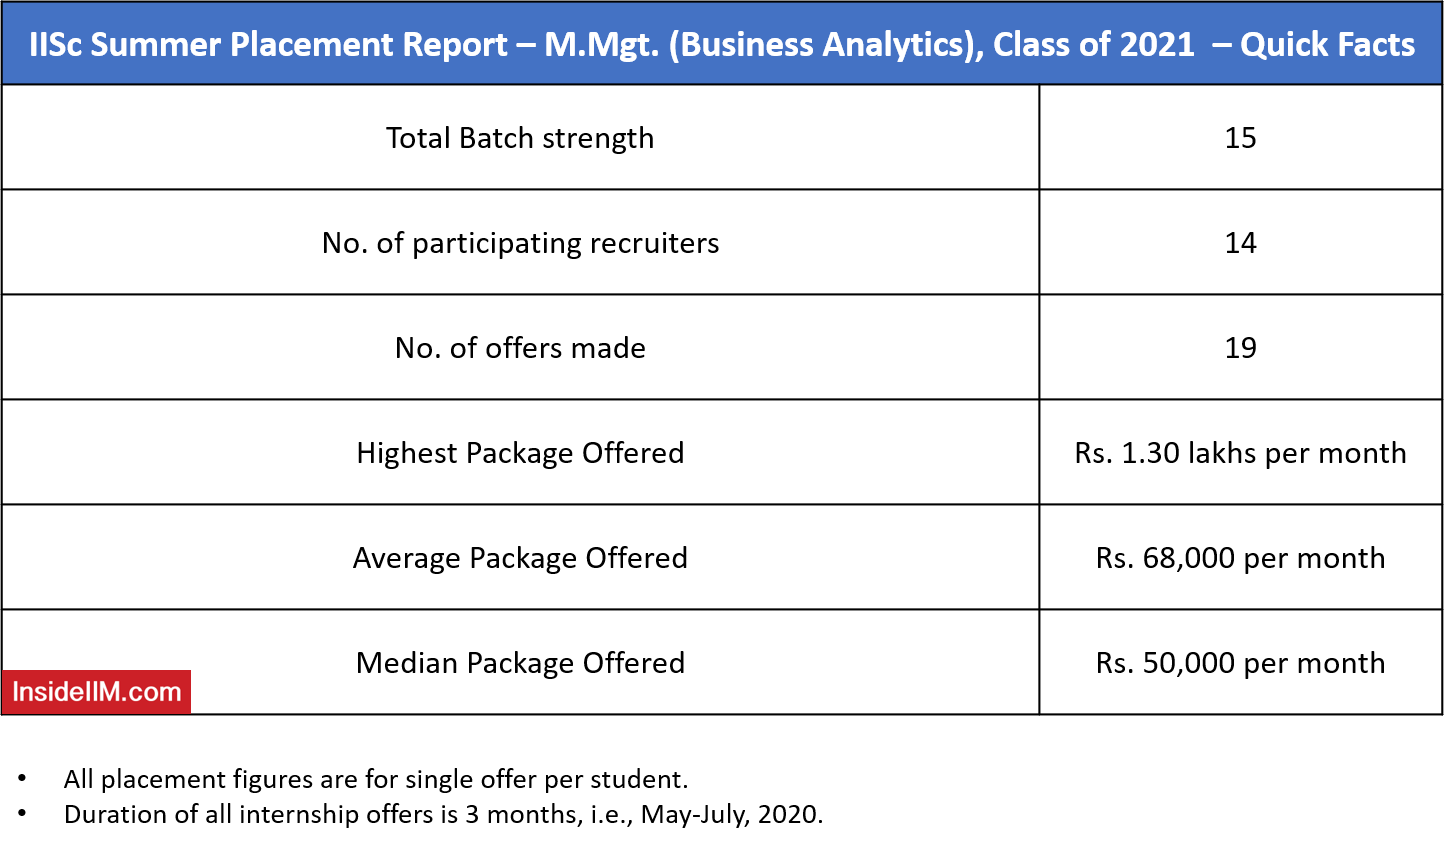 IISc M.Mgmt Summer Placements 2021 - Placement Highlights